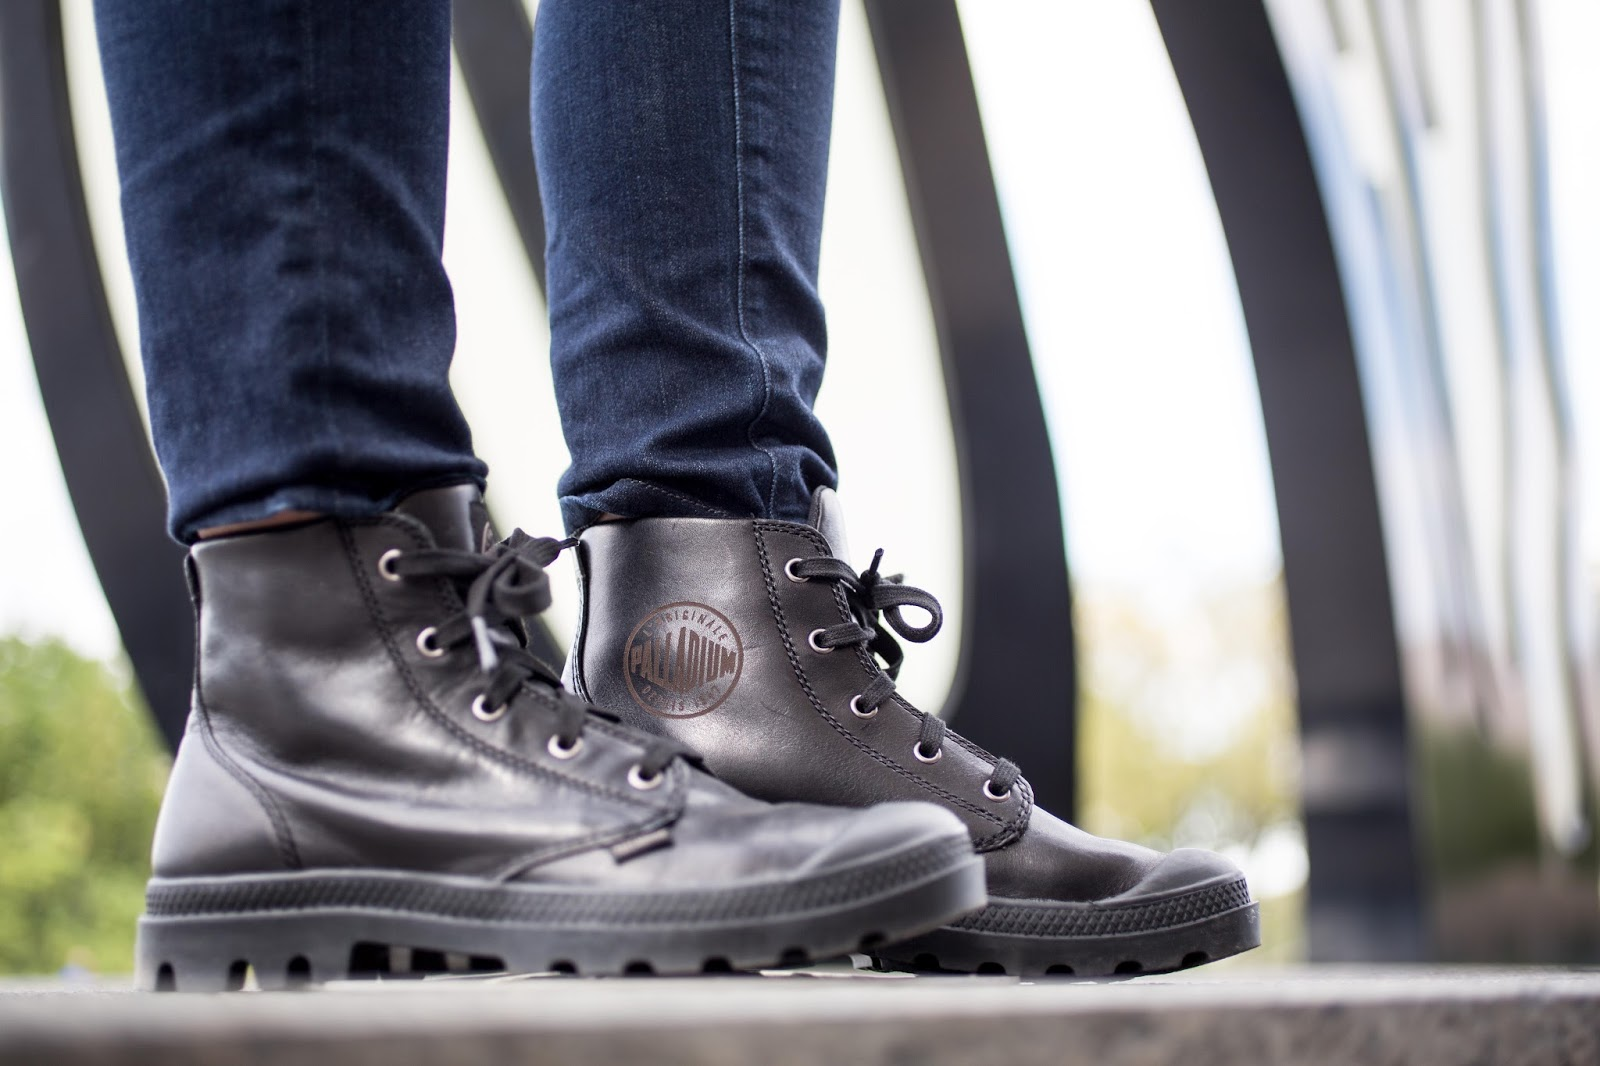 Palladium Boots for Women